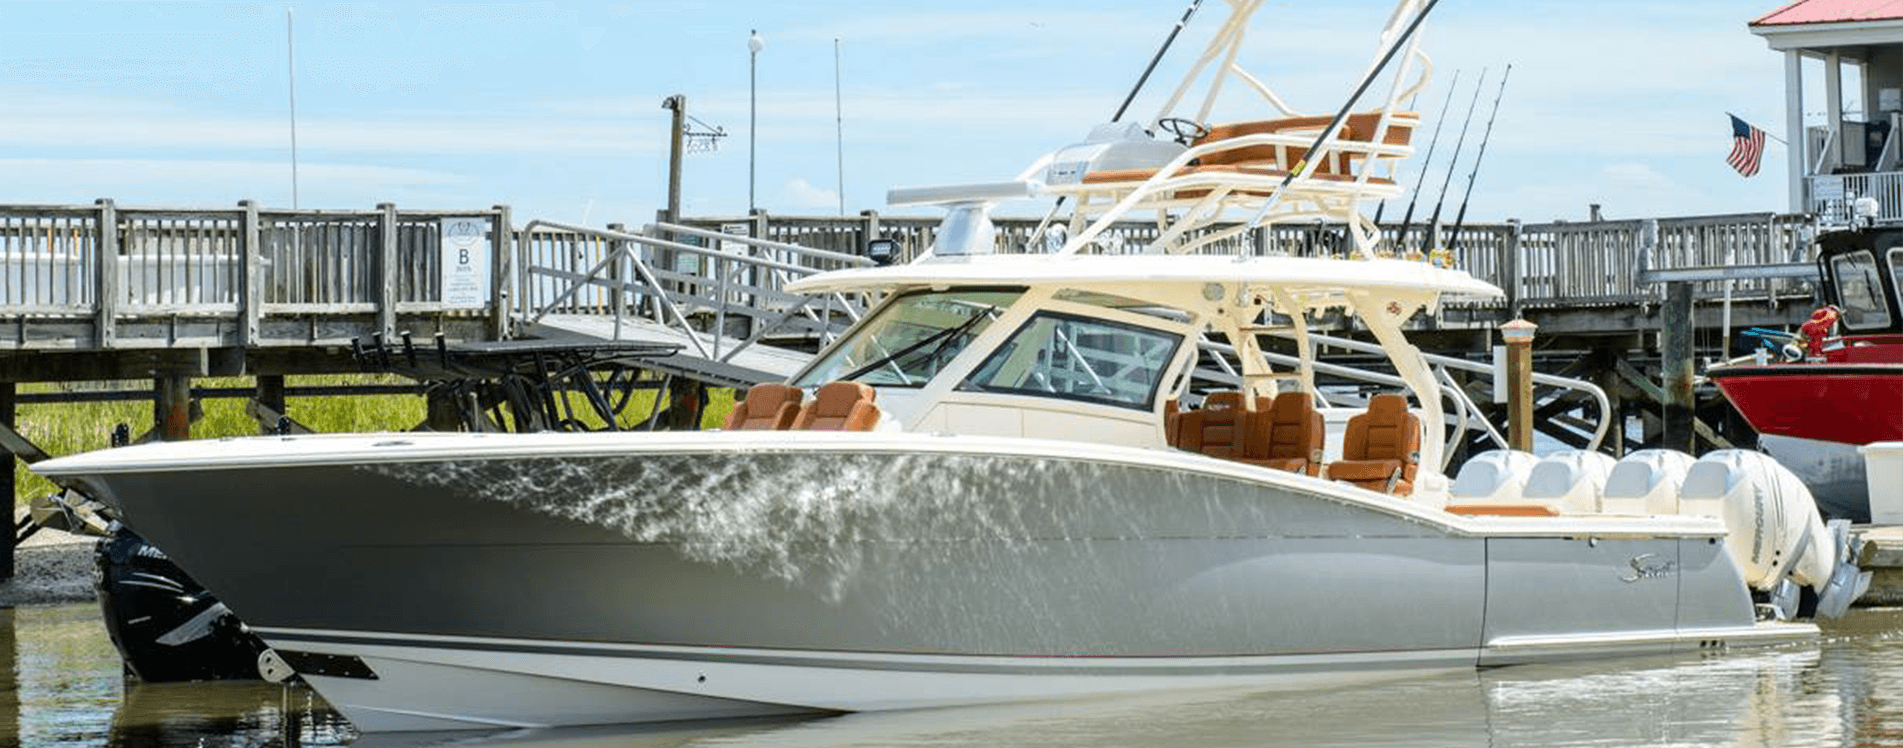 scout boats for sale | Johnson Marine